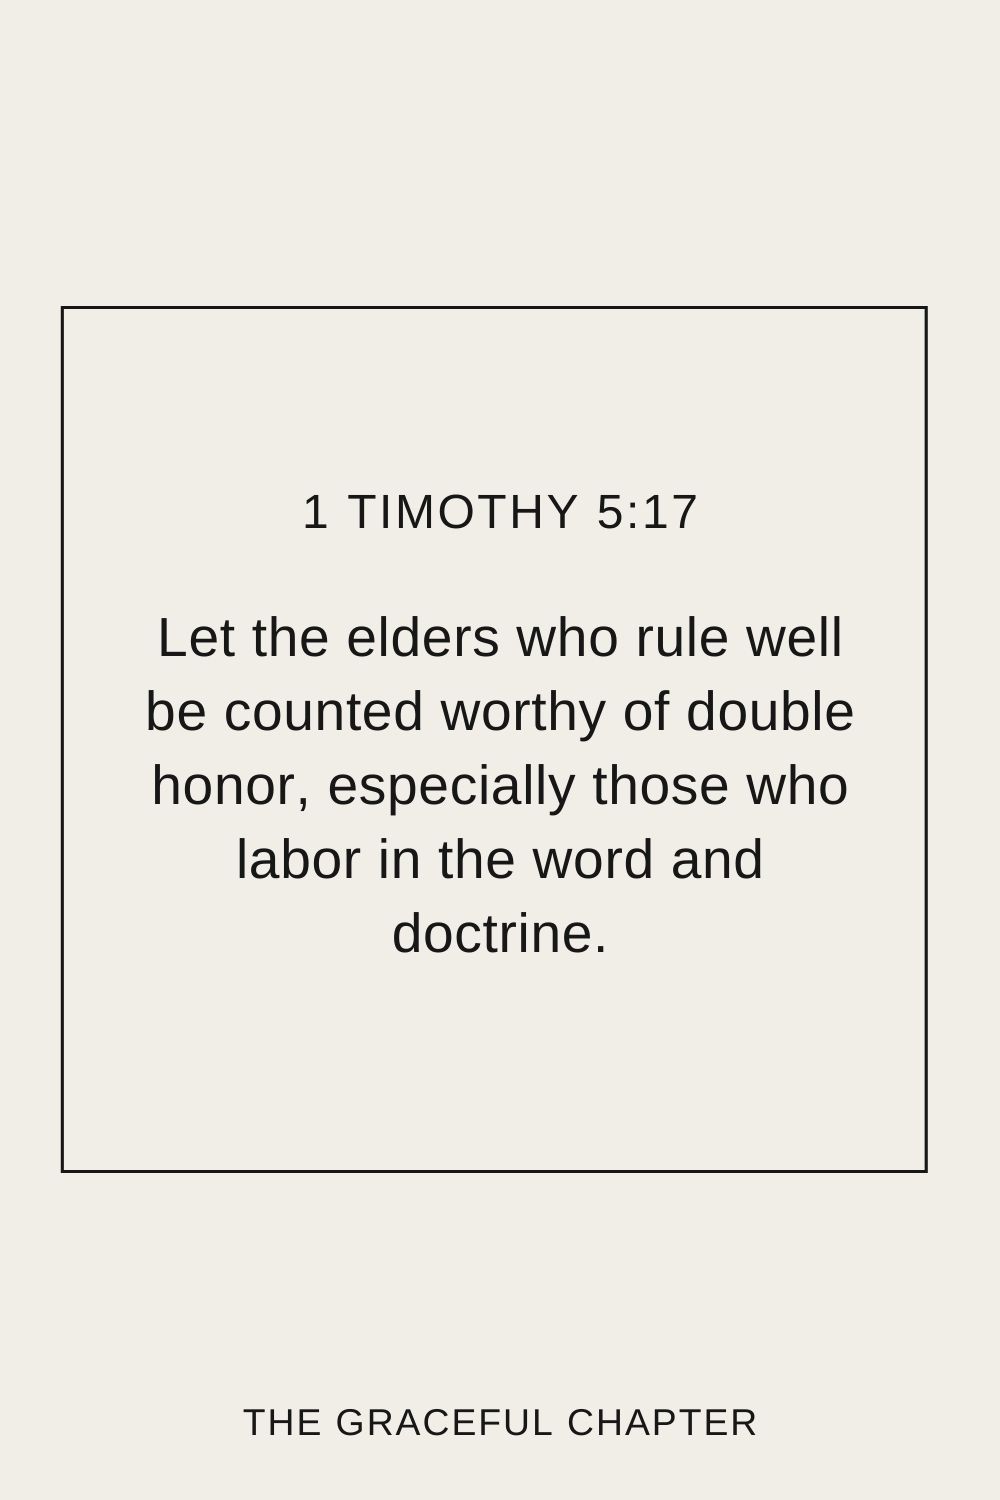 Let the elders who rule well be counted worthy of double honor, especially those who labor in the word and doctrine.